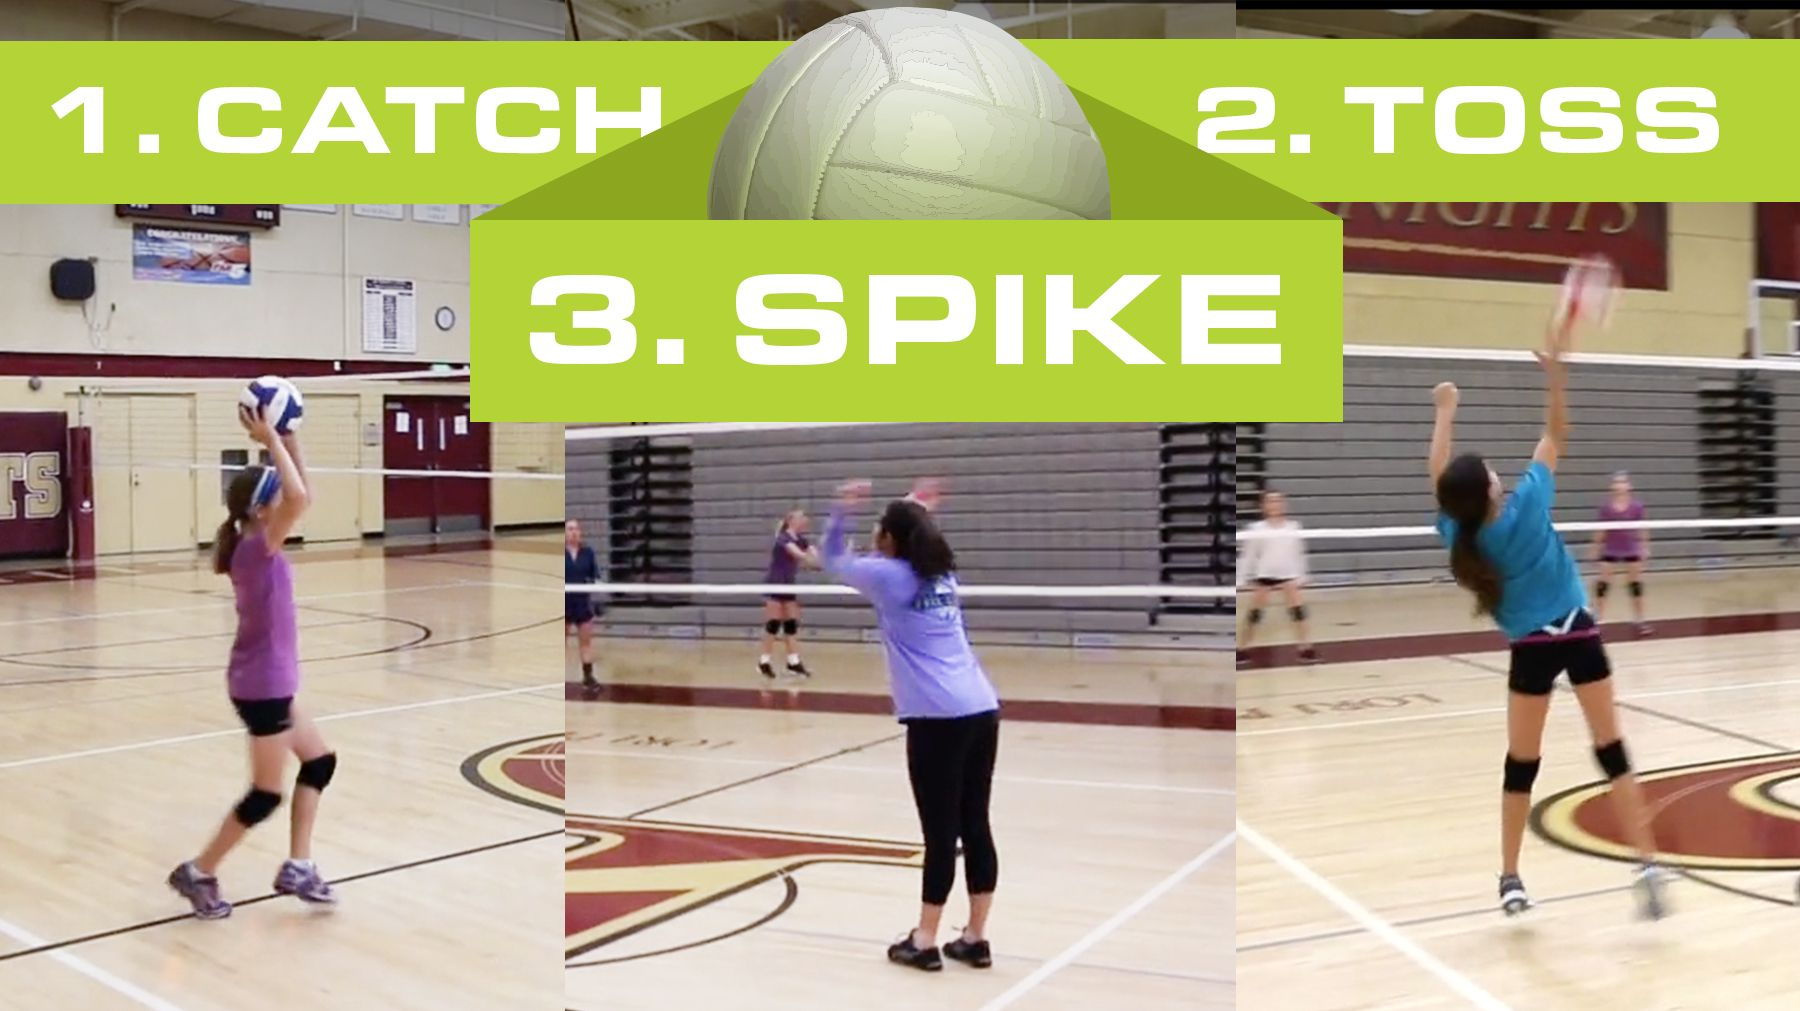 Catch Toss Spike Game For Beginners The Art Of Coaching Volleyball Coaching Volleyball Volleyball Drills Volleyball Drills For Beginners